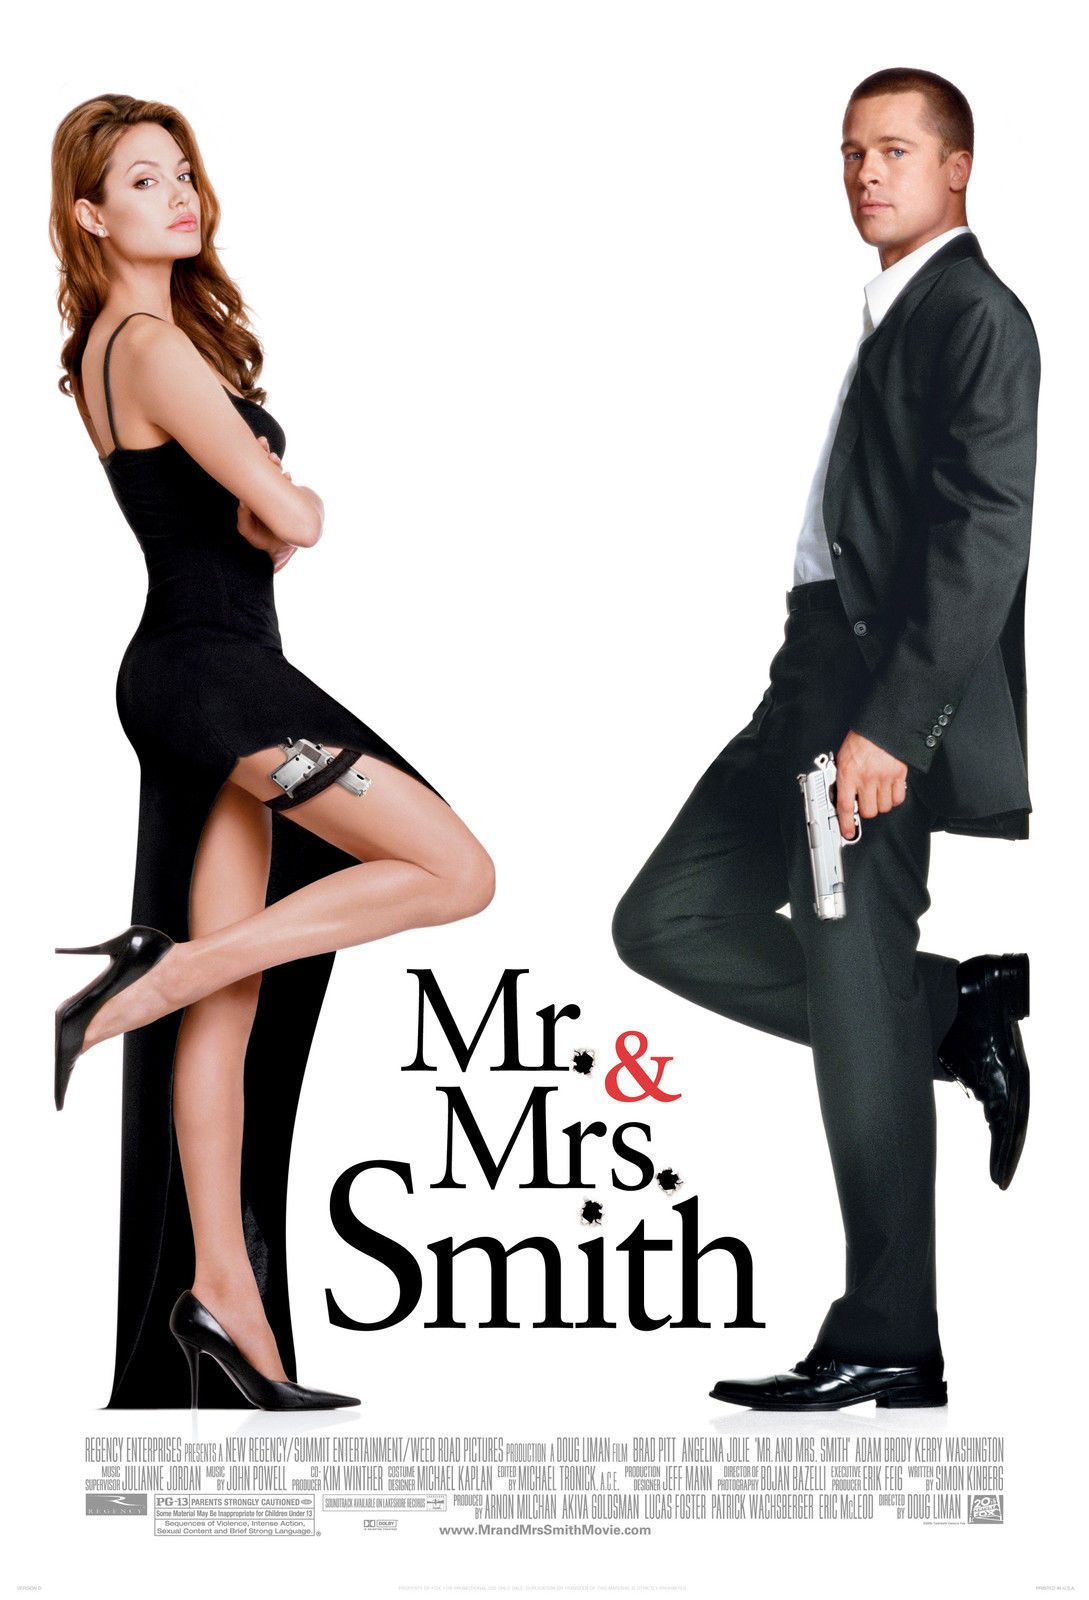 CLICK IMAGR TO BUY IT NOW ! Mr. & Mrs. Smith (2005) Movie Poster New 24x36 Brad Pitt, Angelina Jolie .When choosing one of our amazing posters images you are acquiring a piece of art history from the world of entertainment #historyoftheworld